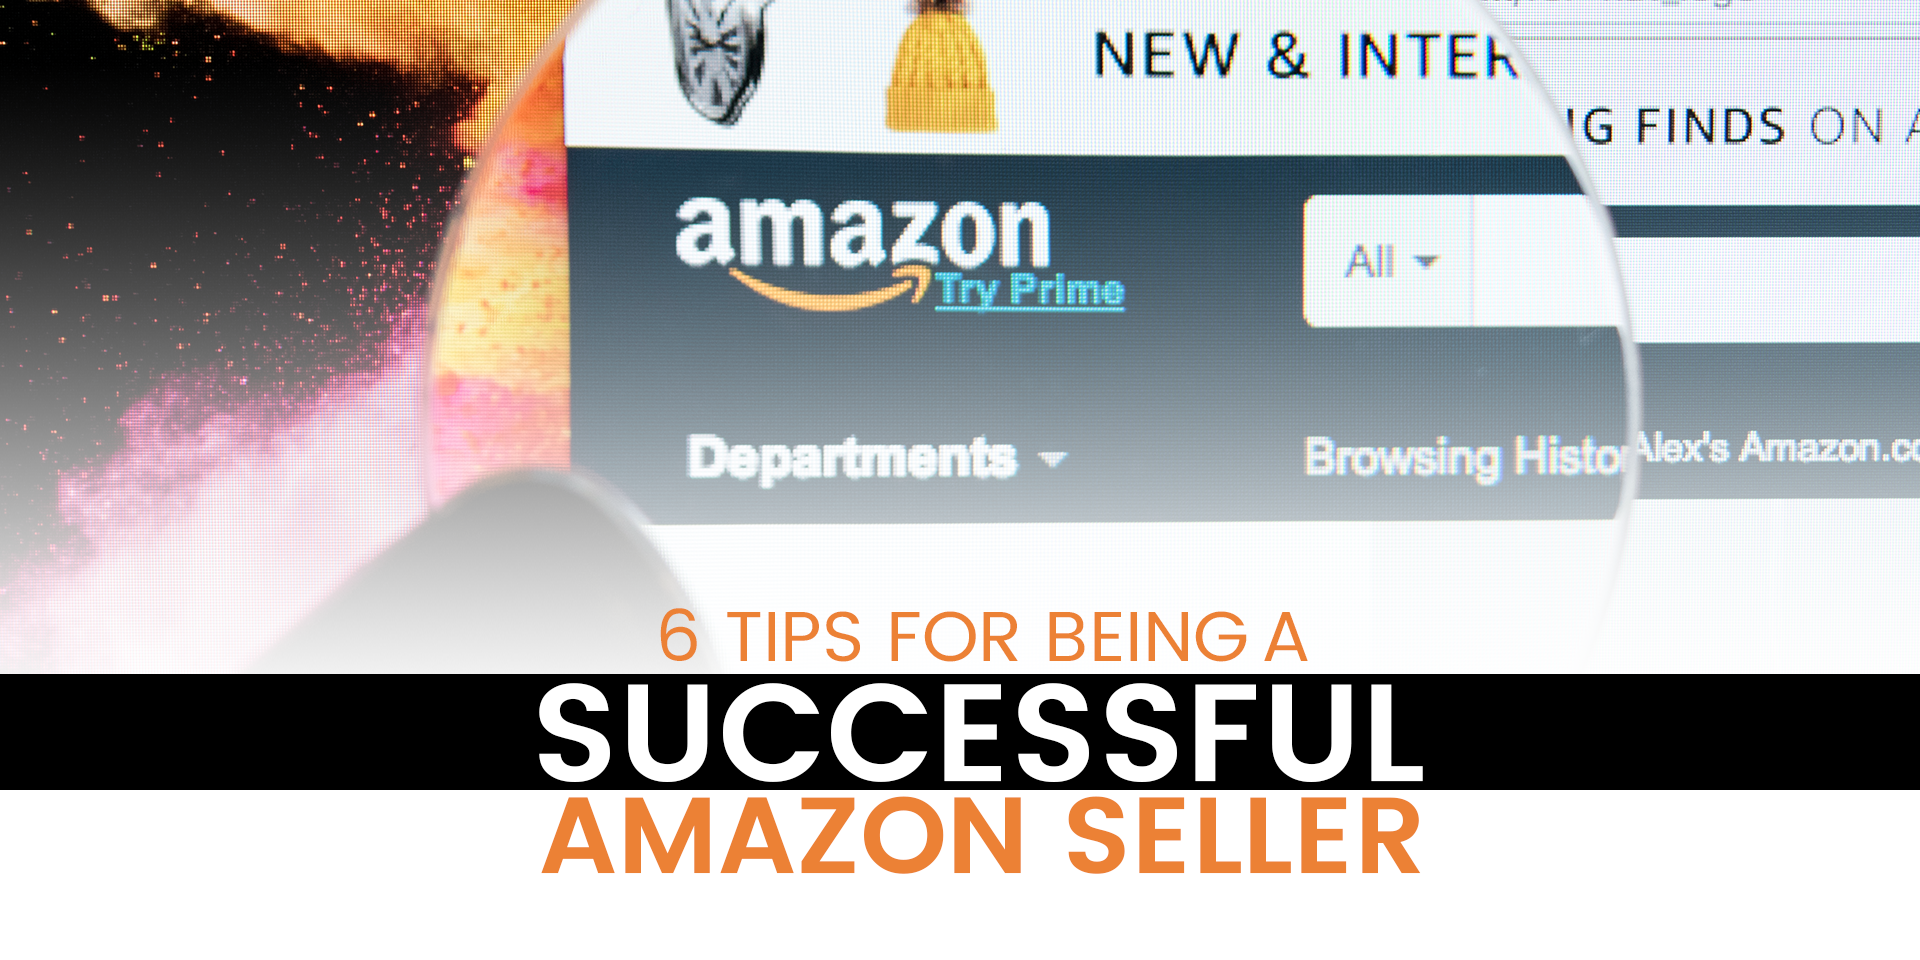 6 Tips for Being a Successful Amazon Seller